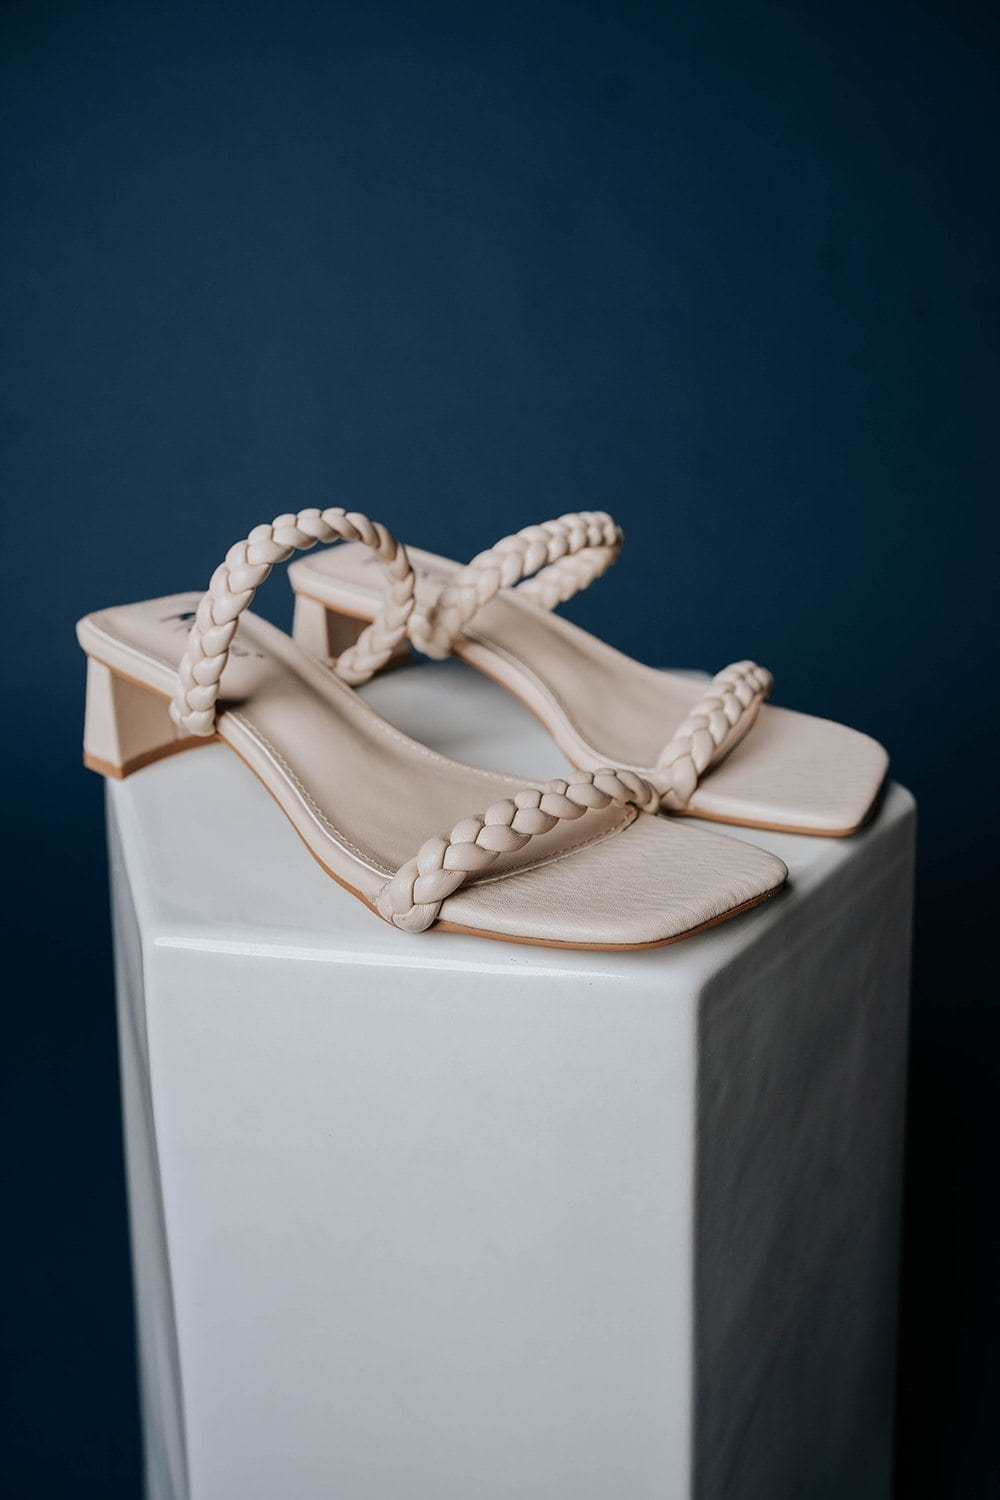 Walk in Rome Heels in Light Taupe, cladandcloth, n/a.